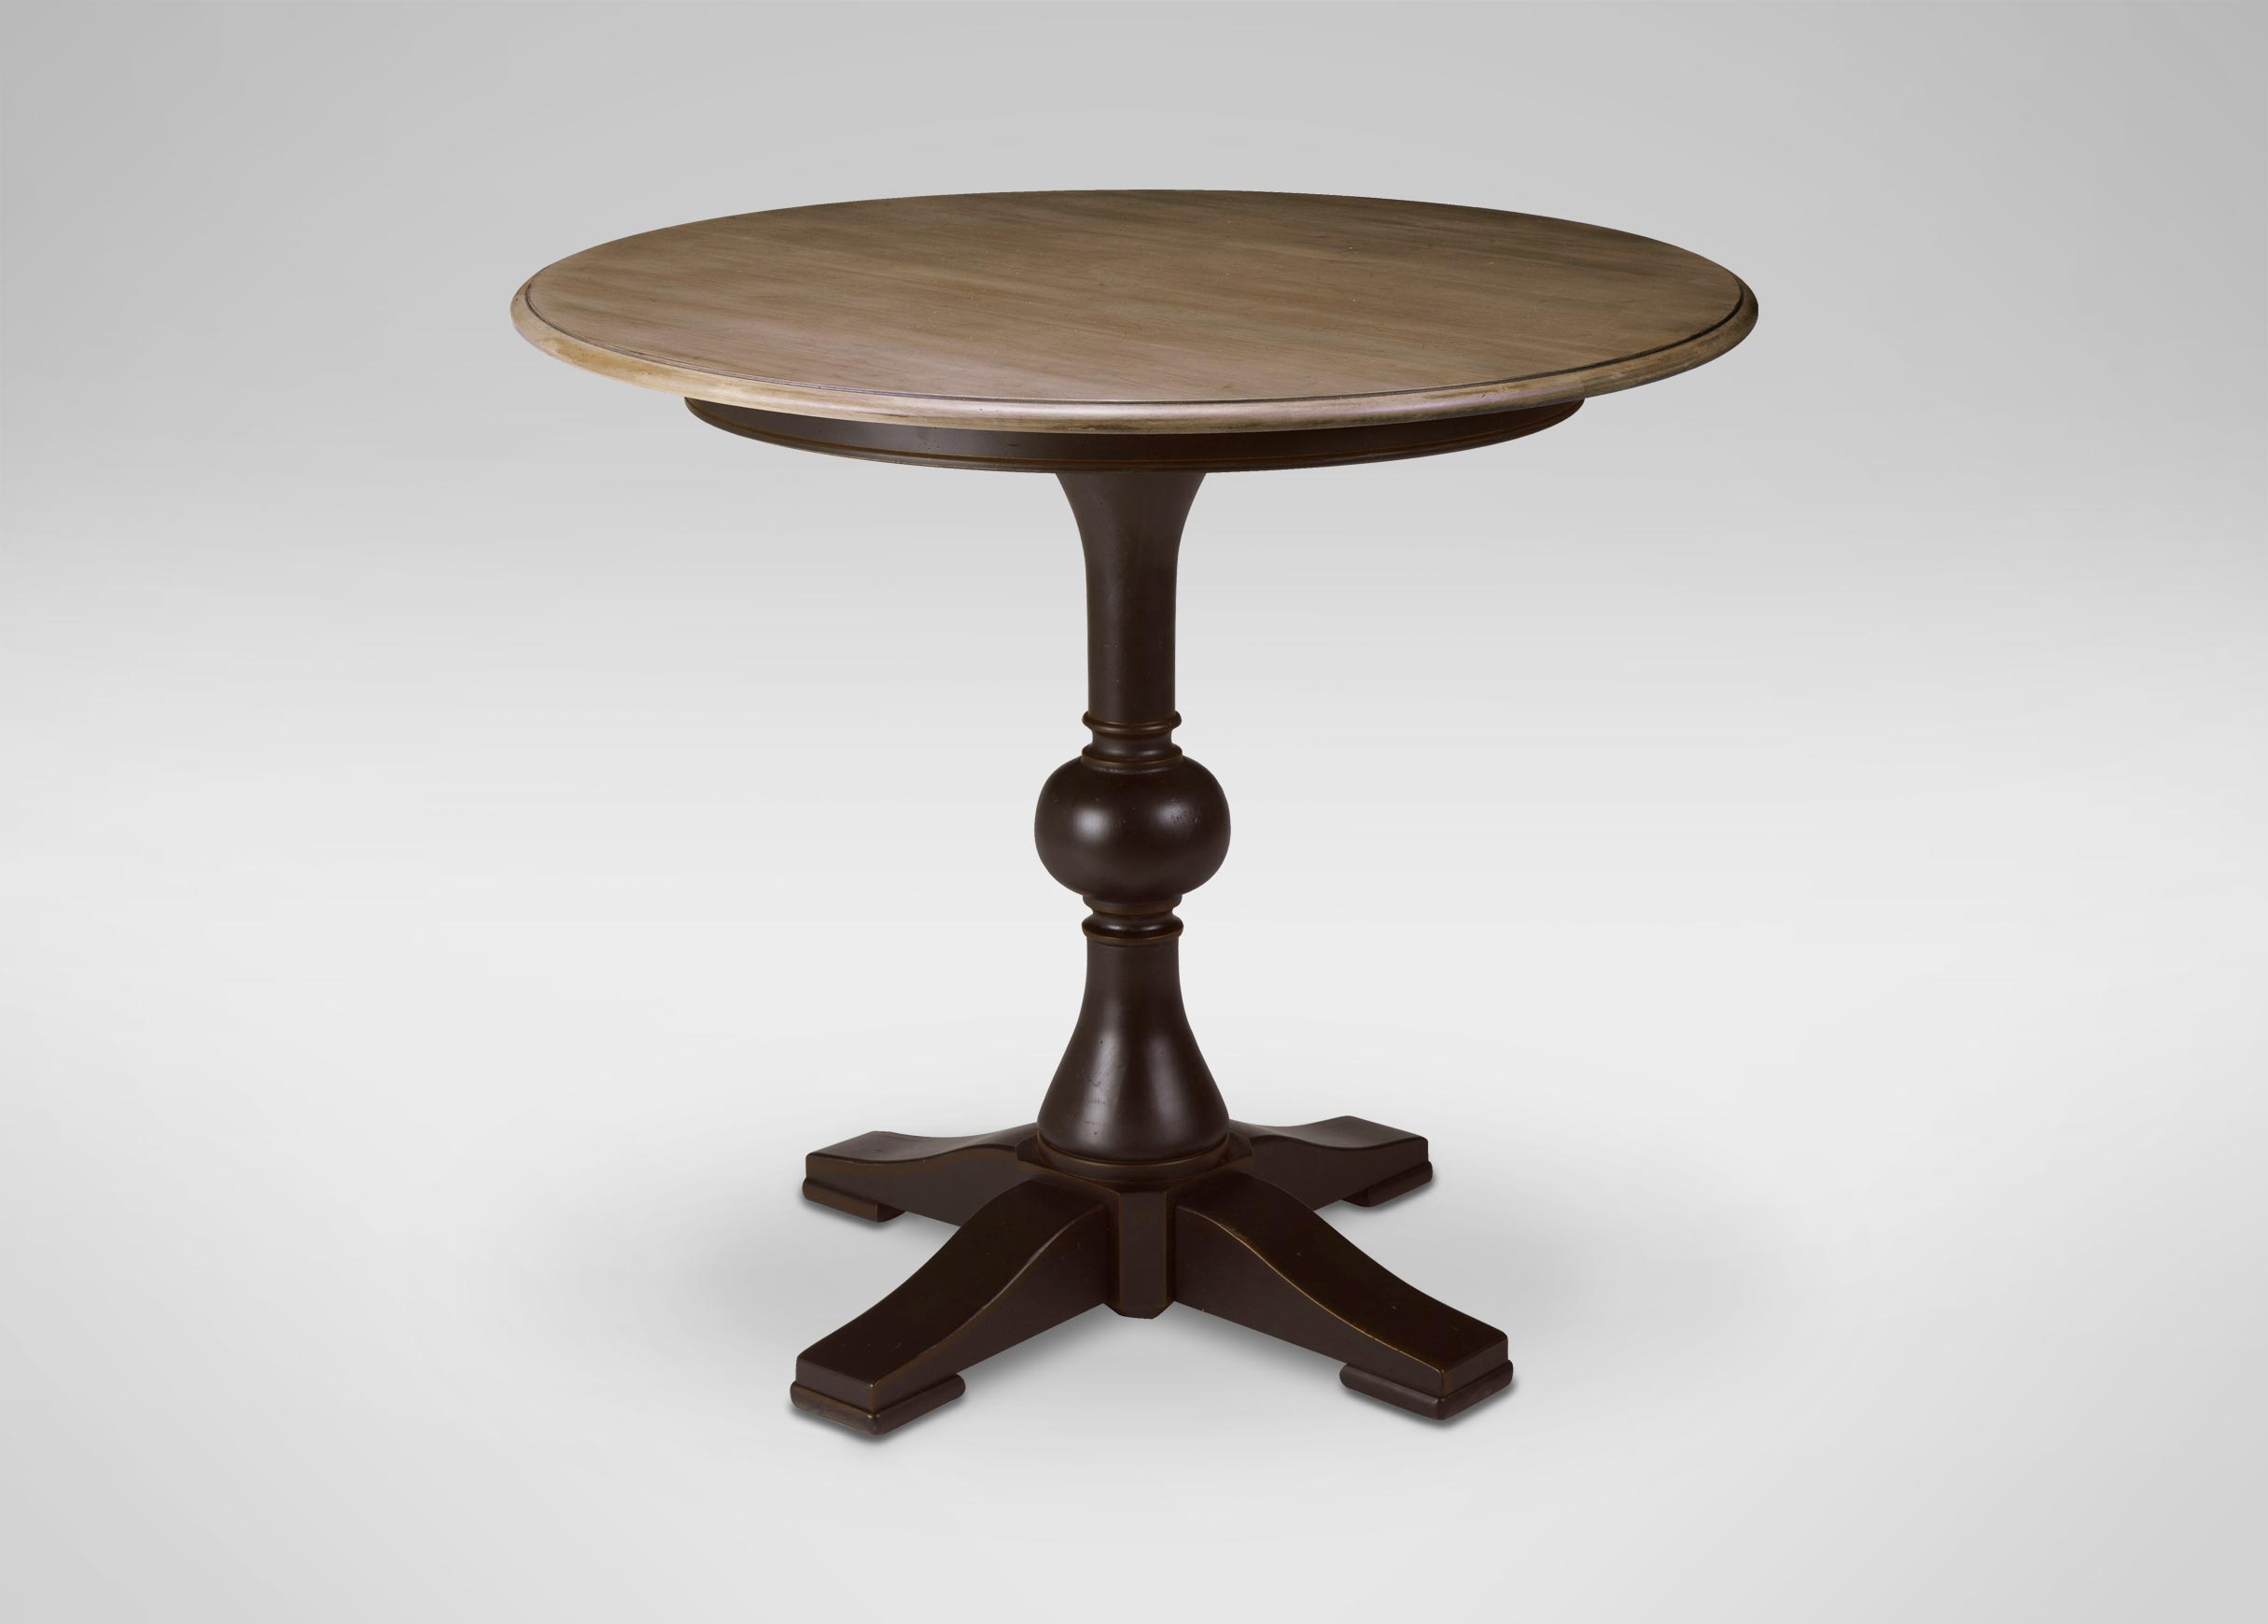 Pedestal Dining Tables Hayneedle Images Brilliant Ideas